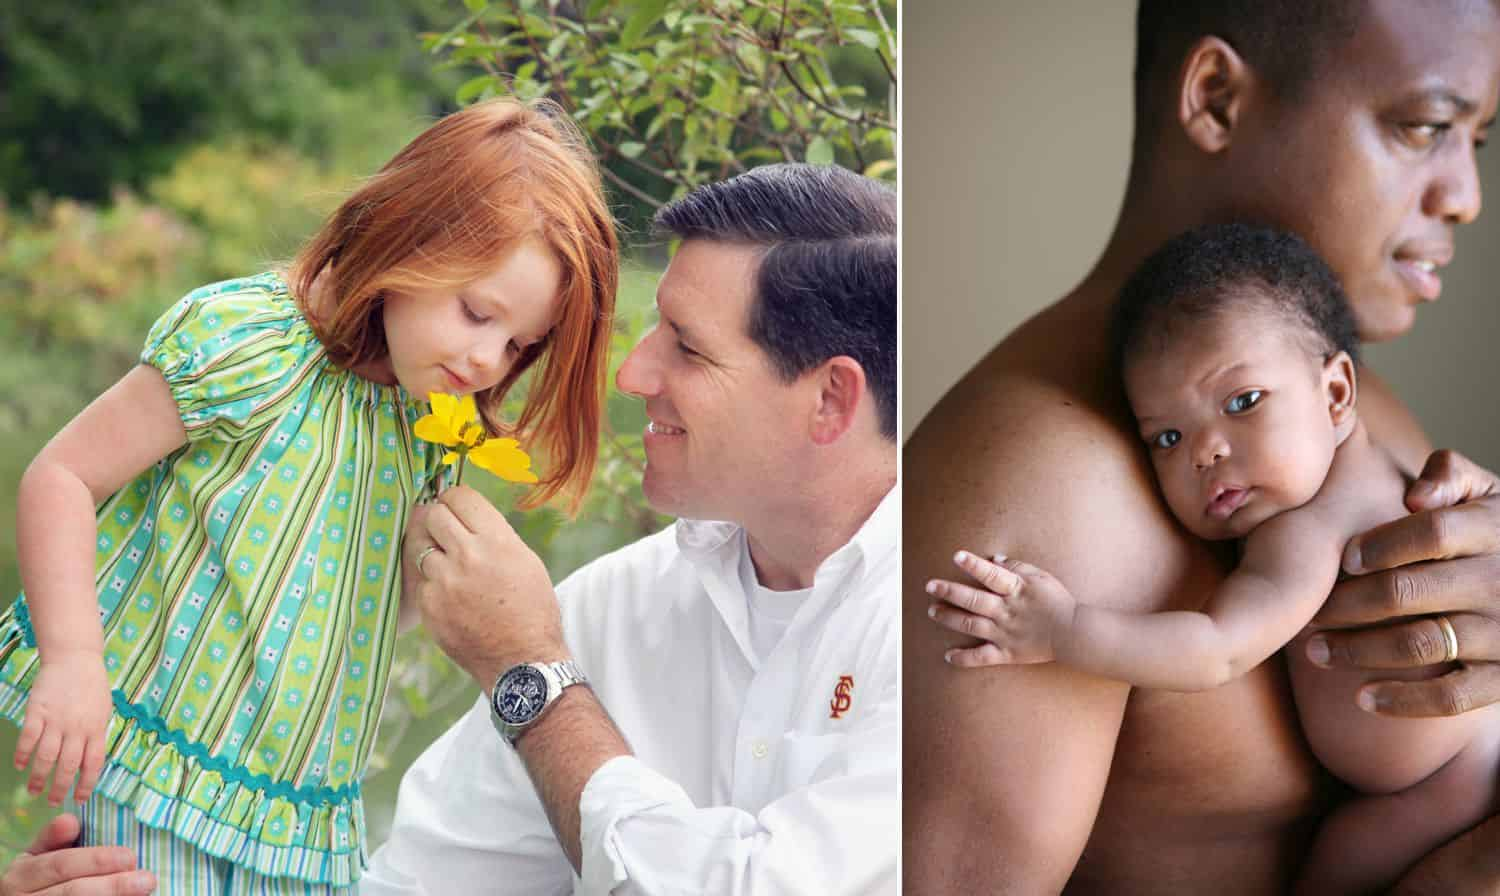 (Left) Dad holds flower for little girl to smell. (Right) Shirtless dad holds newborn baby to his chest.